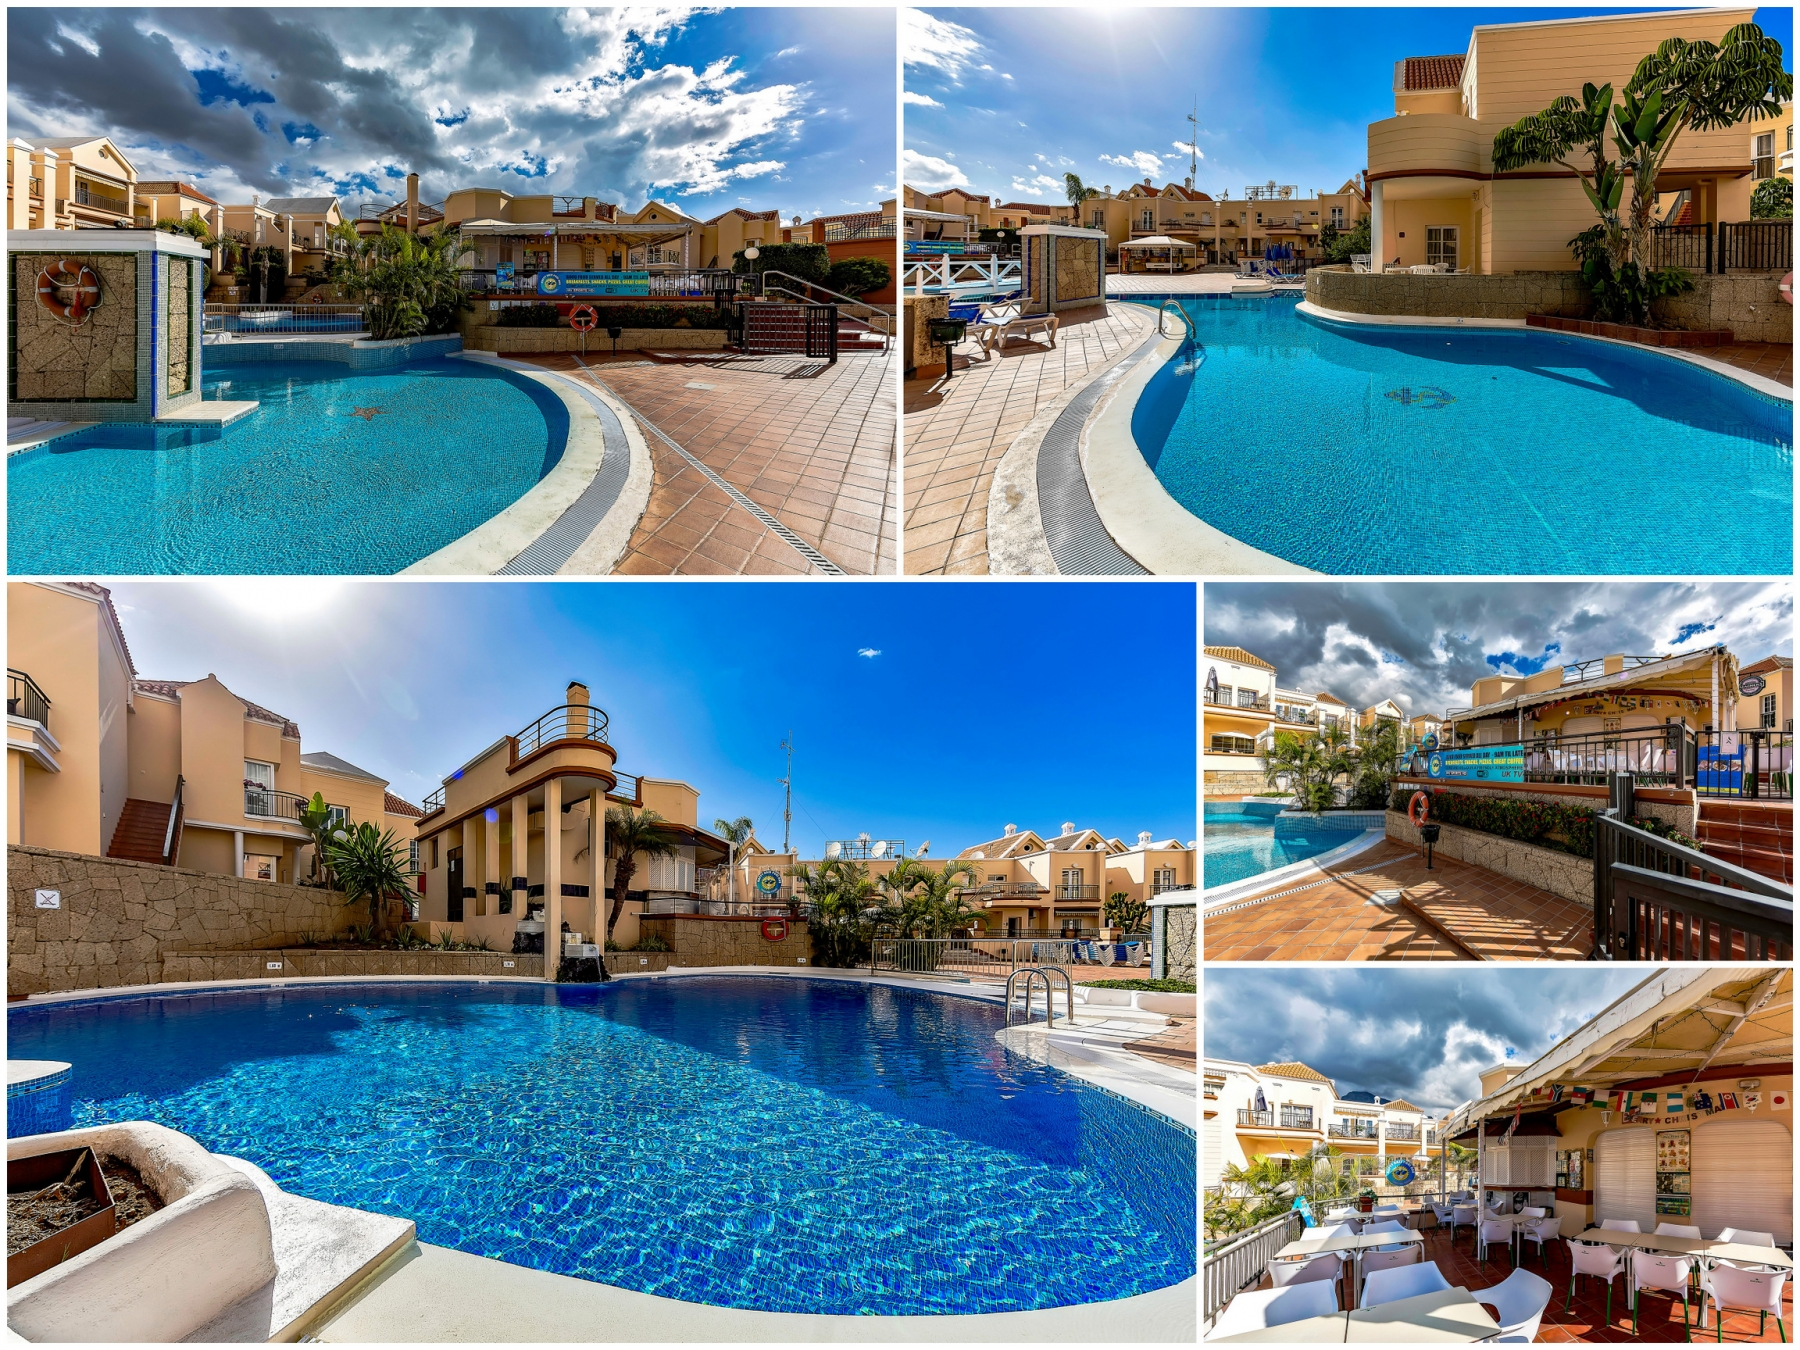 Properties for Sale in Tenerife, Canary Islands, Spain | SylkWayStar Real Estate. 1 bedroom apartment Yucca Park. Image-22621